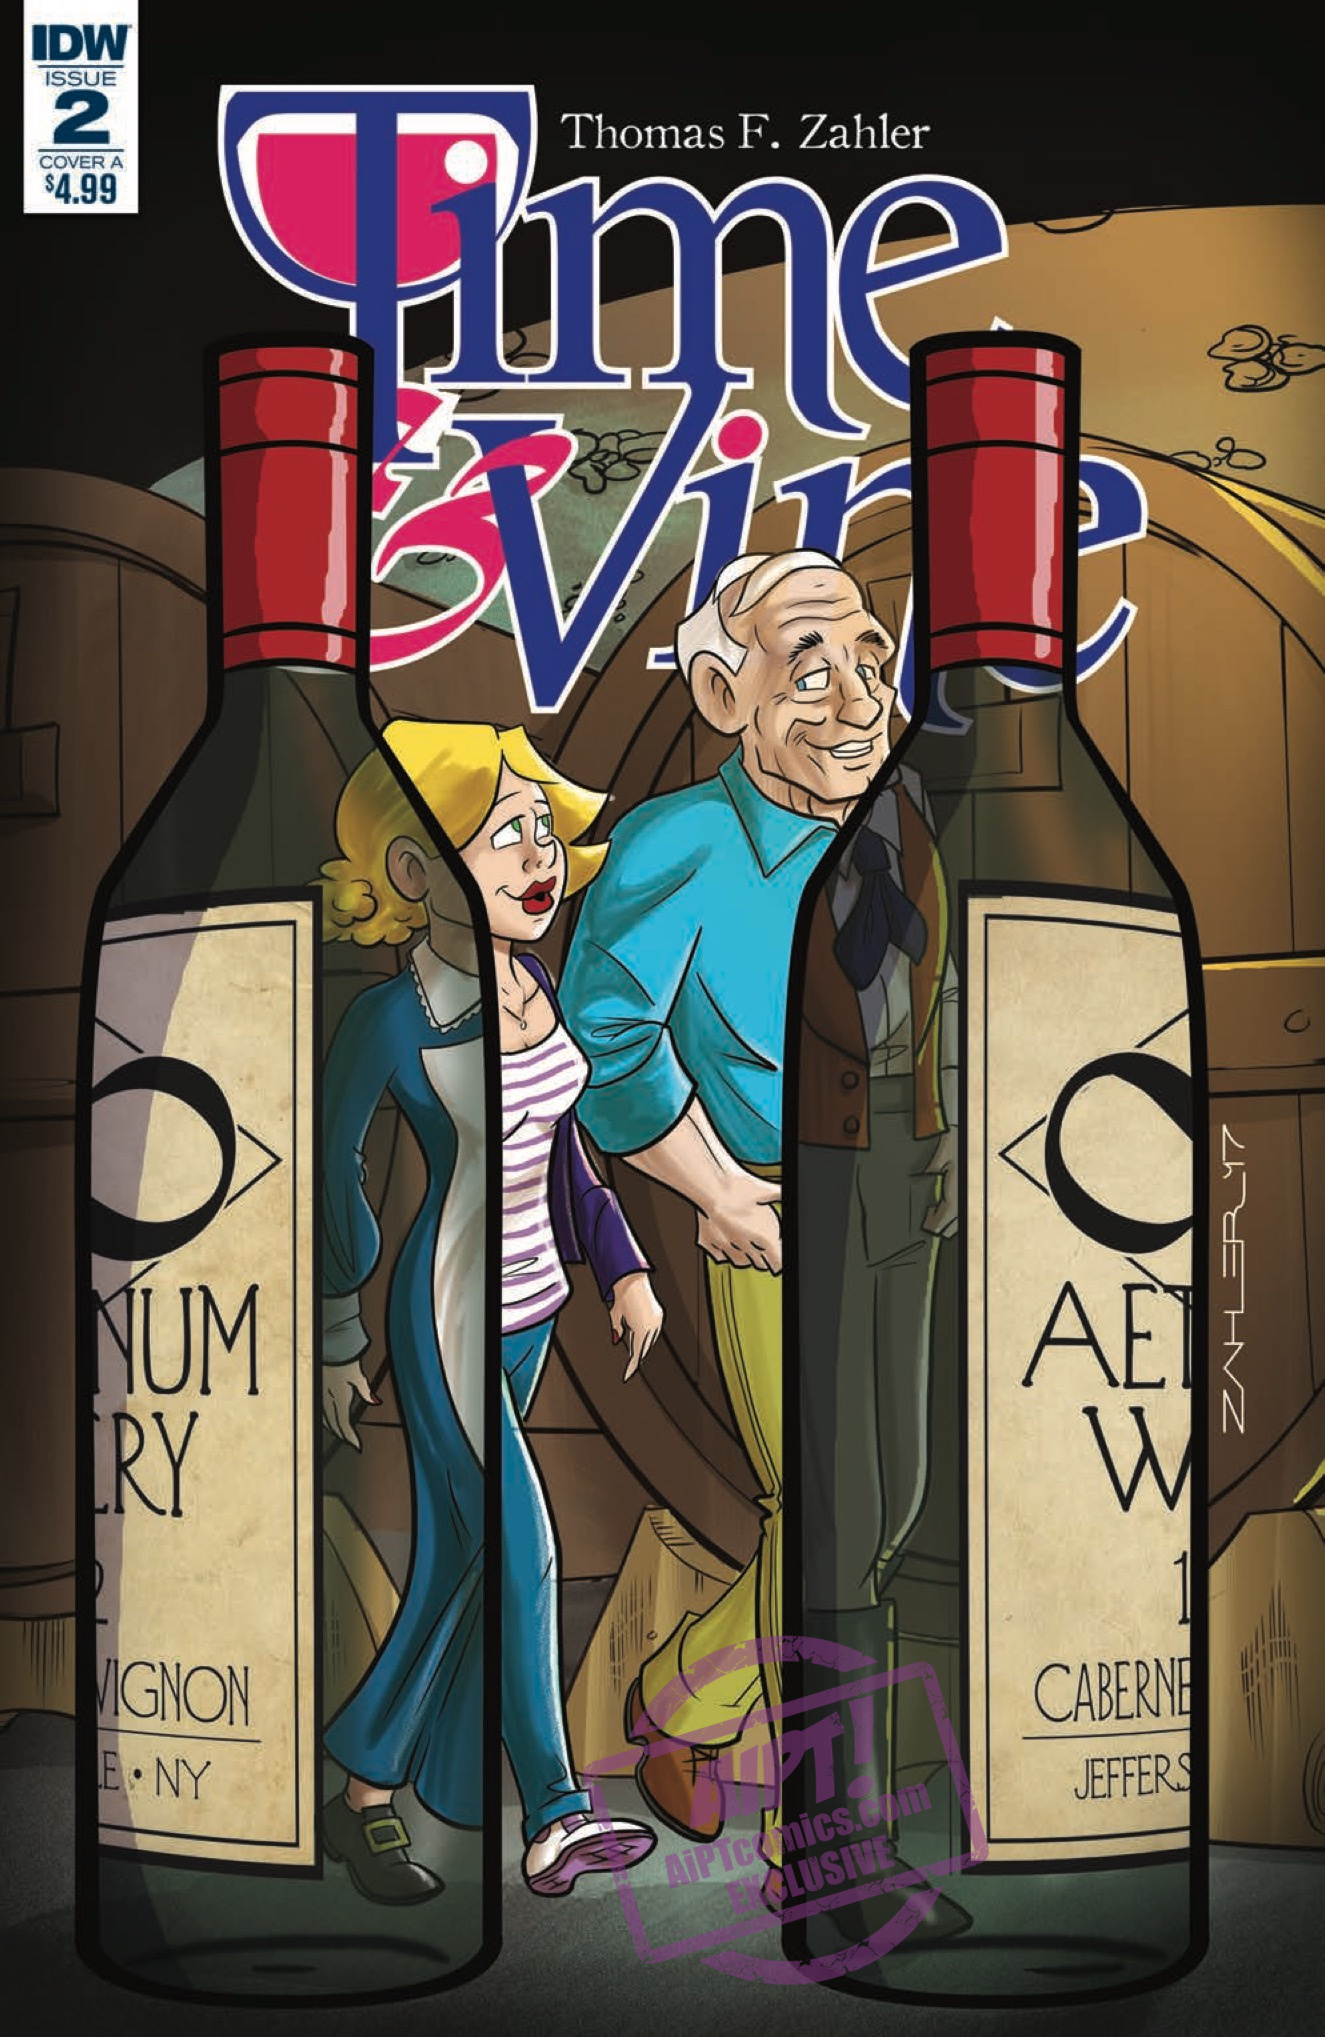 [EXCLUSIVE] IDW Preview: Time & Vine #2